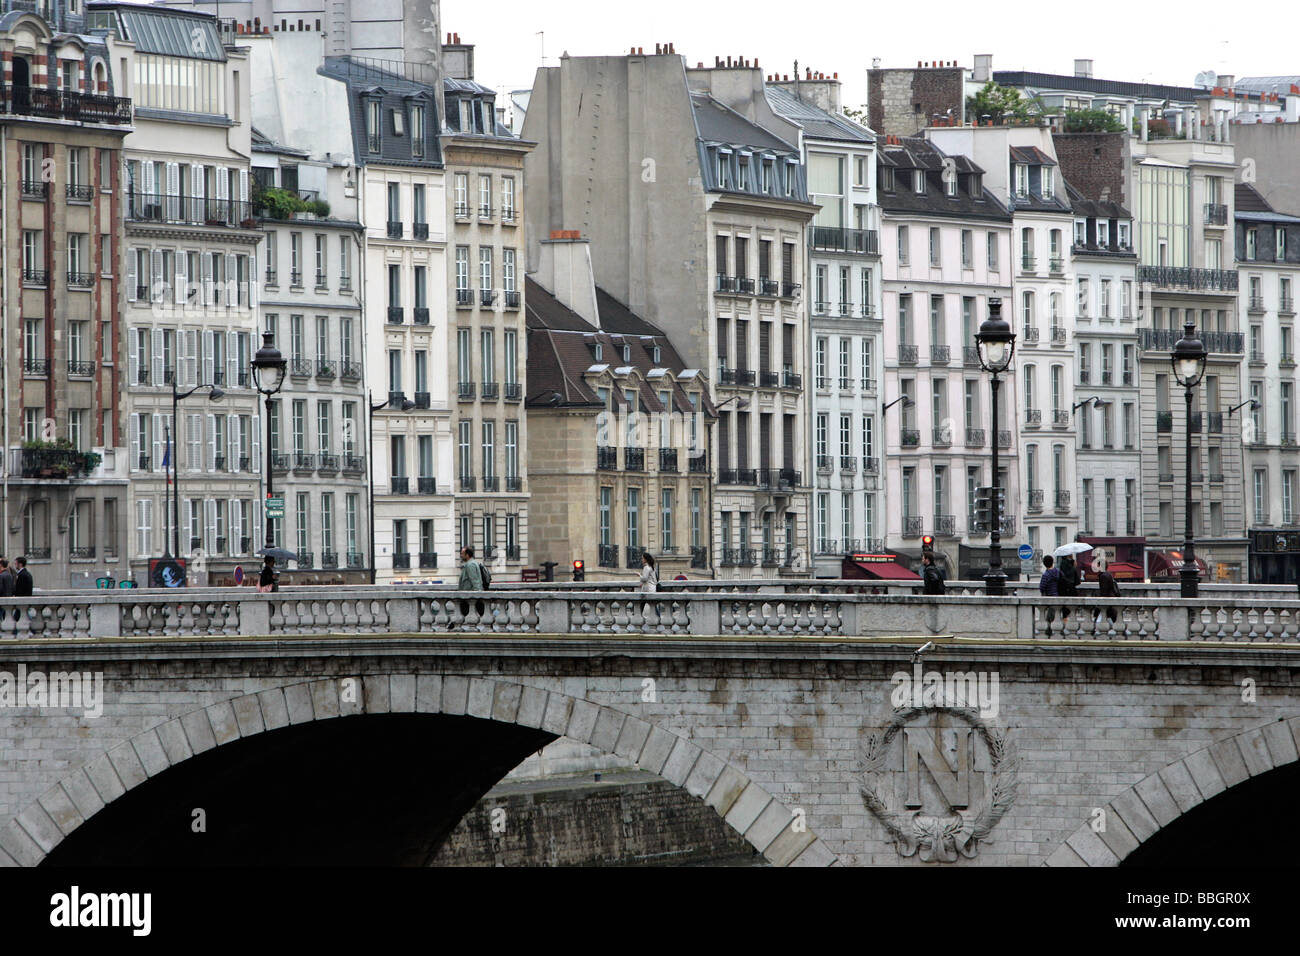 Pont Saint-Michel, left bank, Paris, France - Stock Image